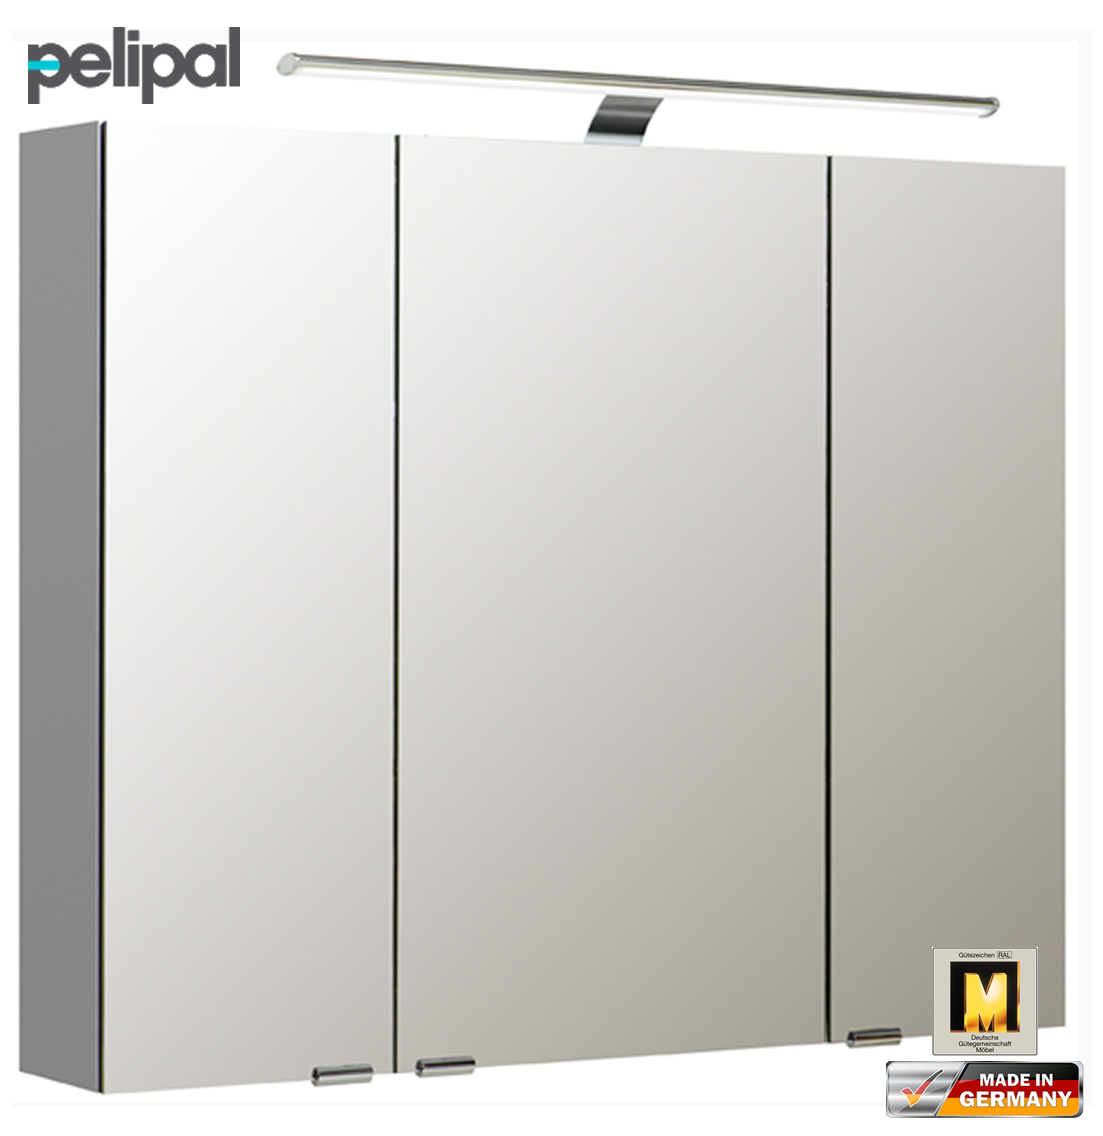 pelipal neutraler spiegelschrank 90 cm mit led aufsatzleuchte s5 spsd 13 impuls home. Black Bedroom Furniture Sets. Home Design Ideas